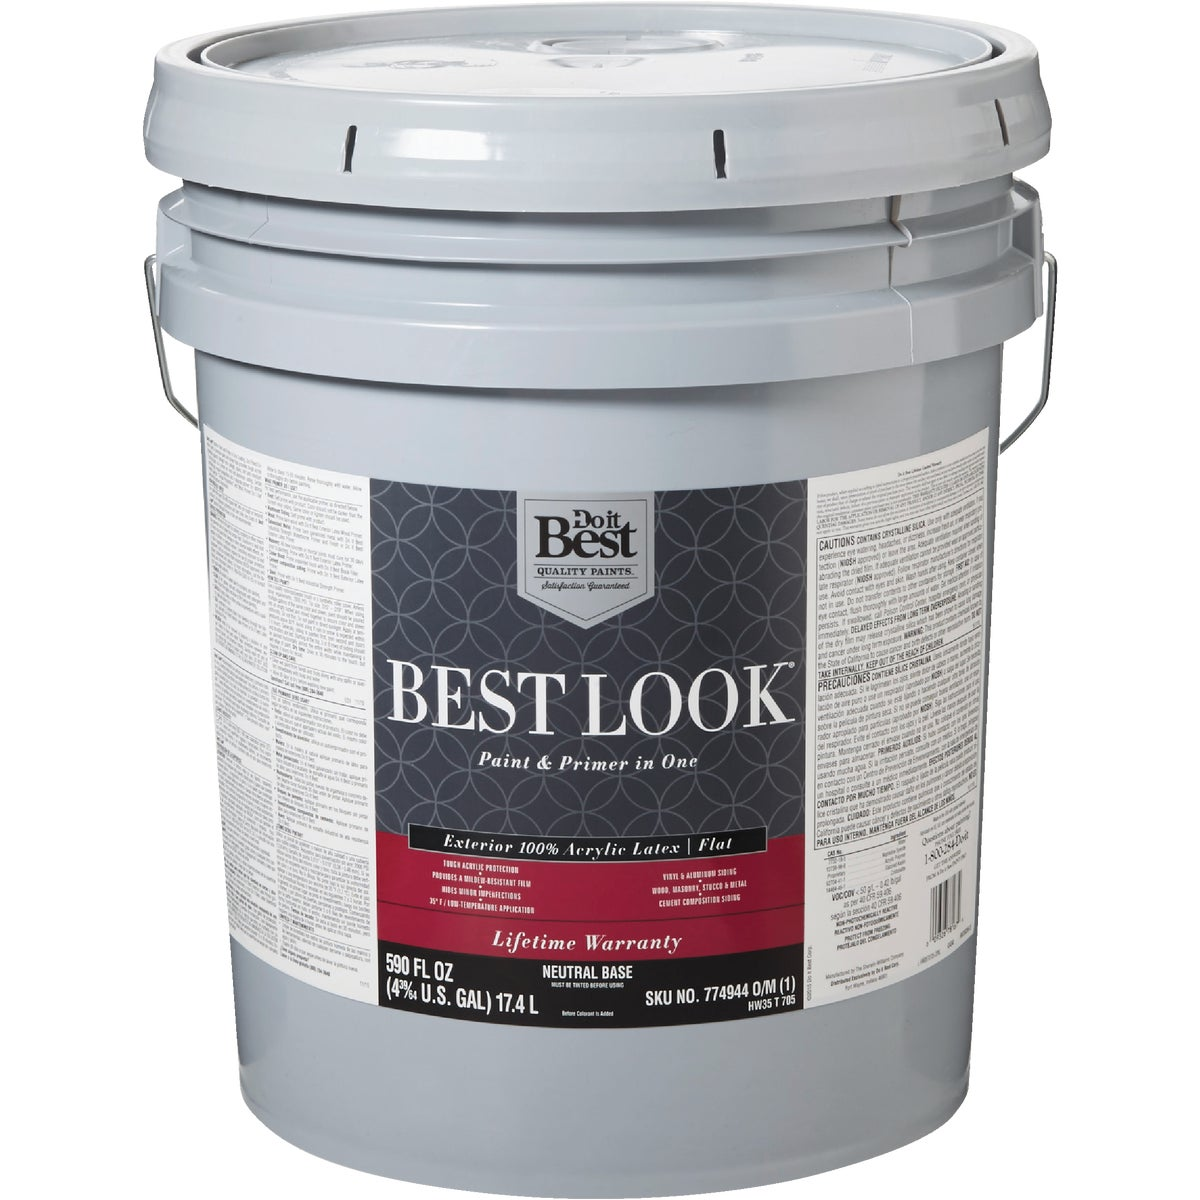 EXT FLAT NEUTRL BS PAINT - HW35T0705-20 by Do it Best